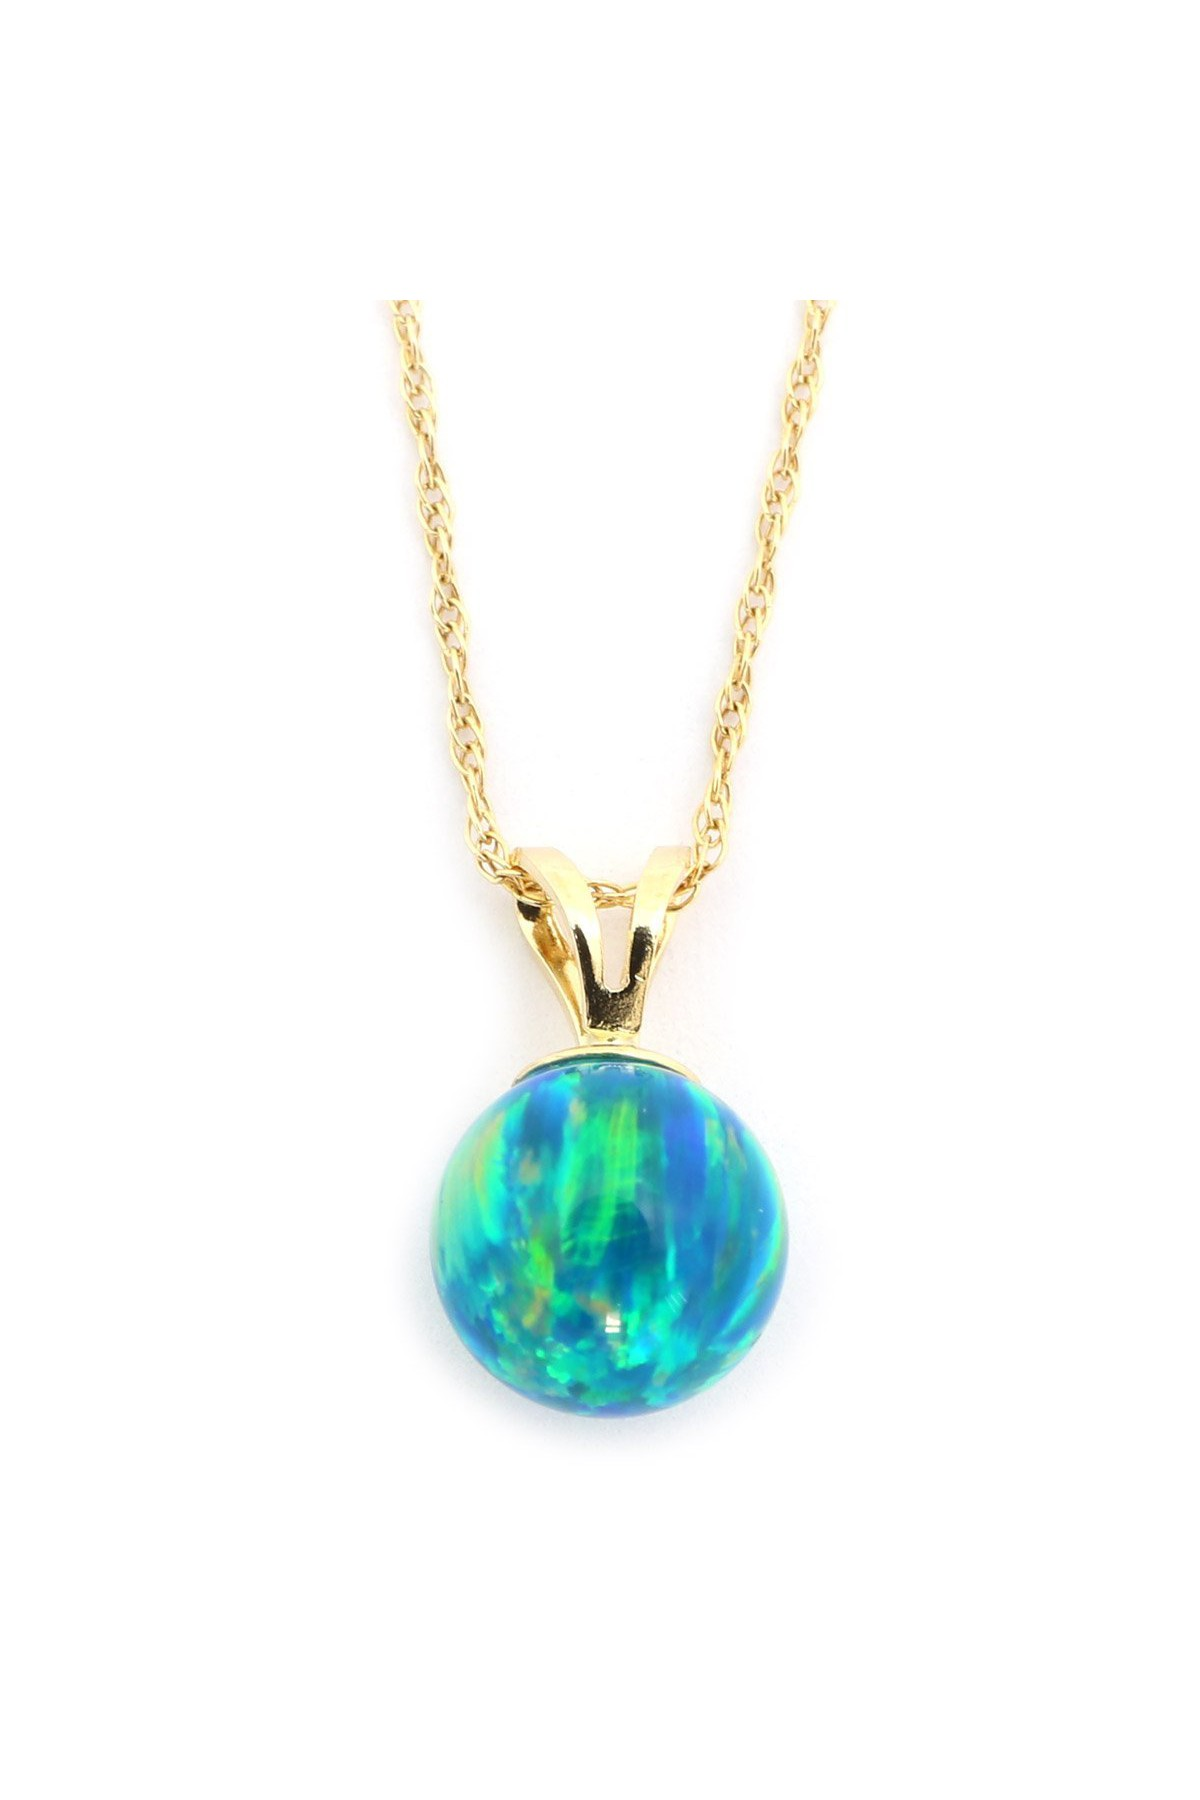 "14k Yellow or White Gold 10mm Green Simulated Opal Pendant Necklace, 13"" 15"" 16"" 18"" 20""... by"